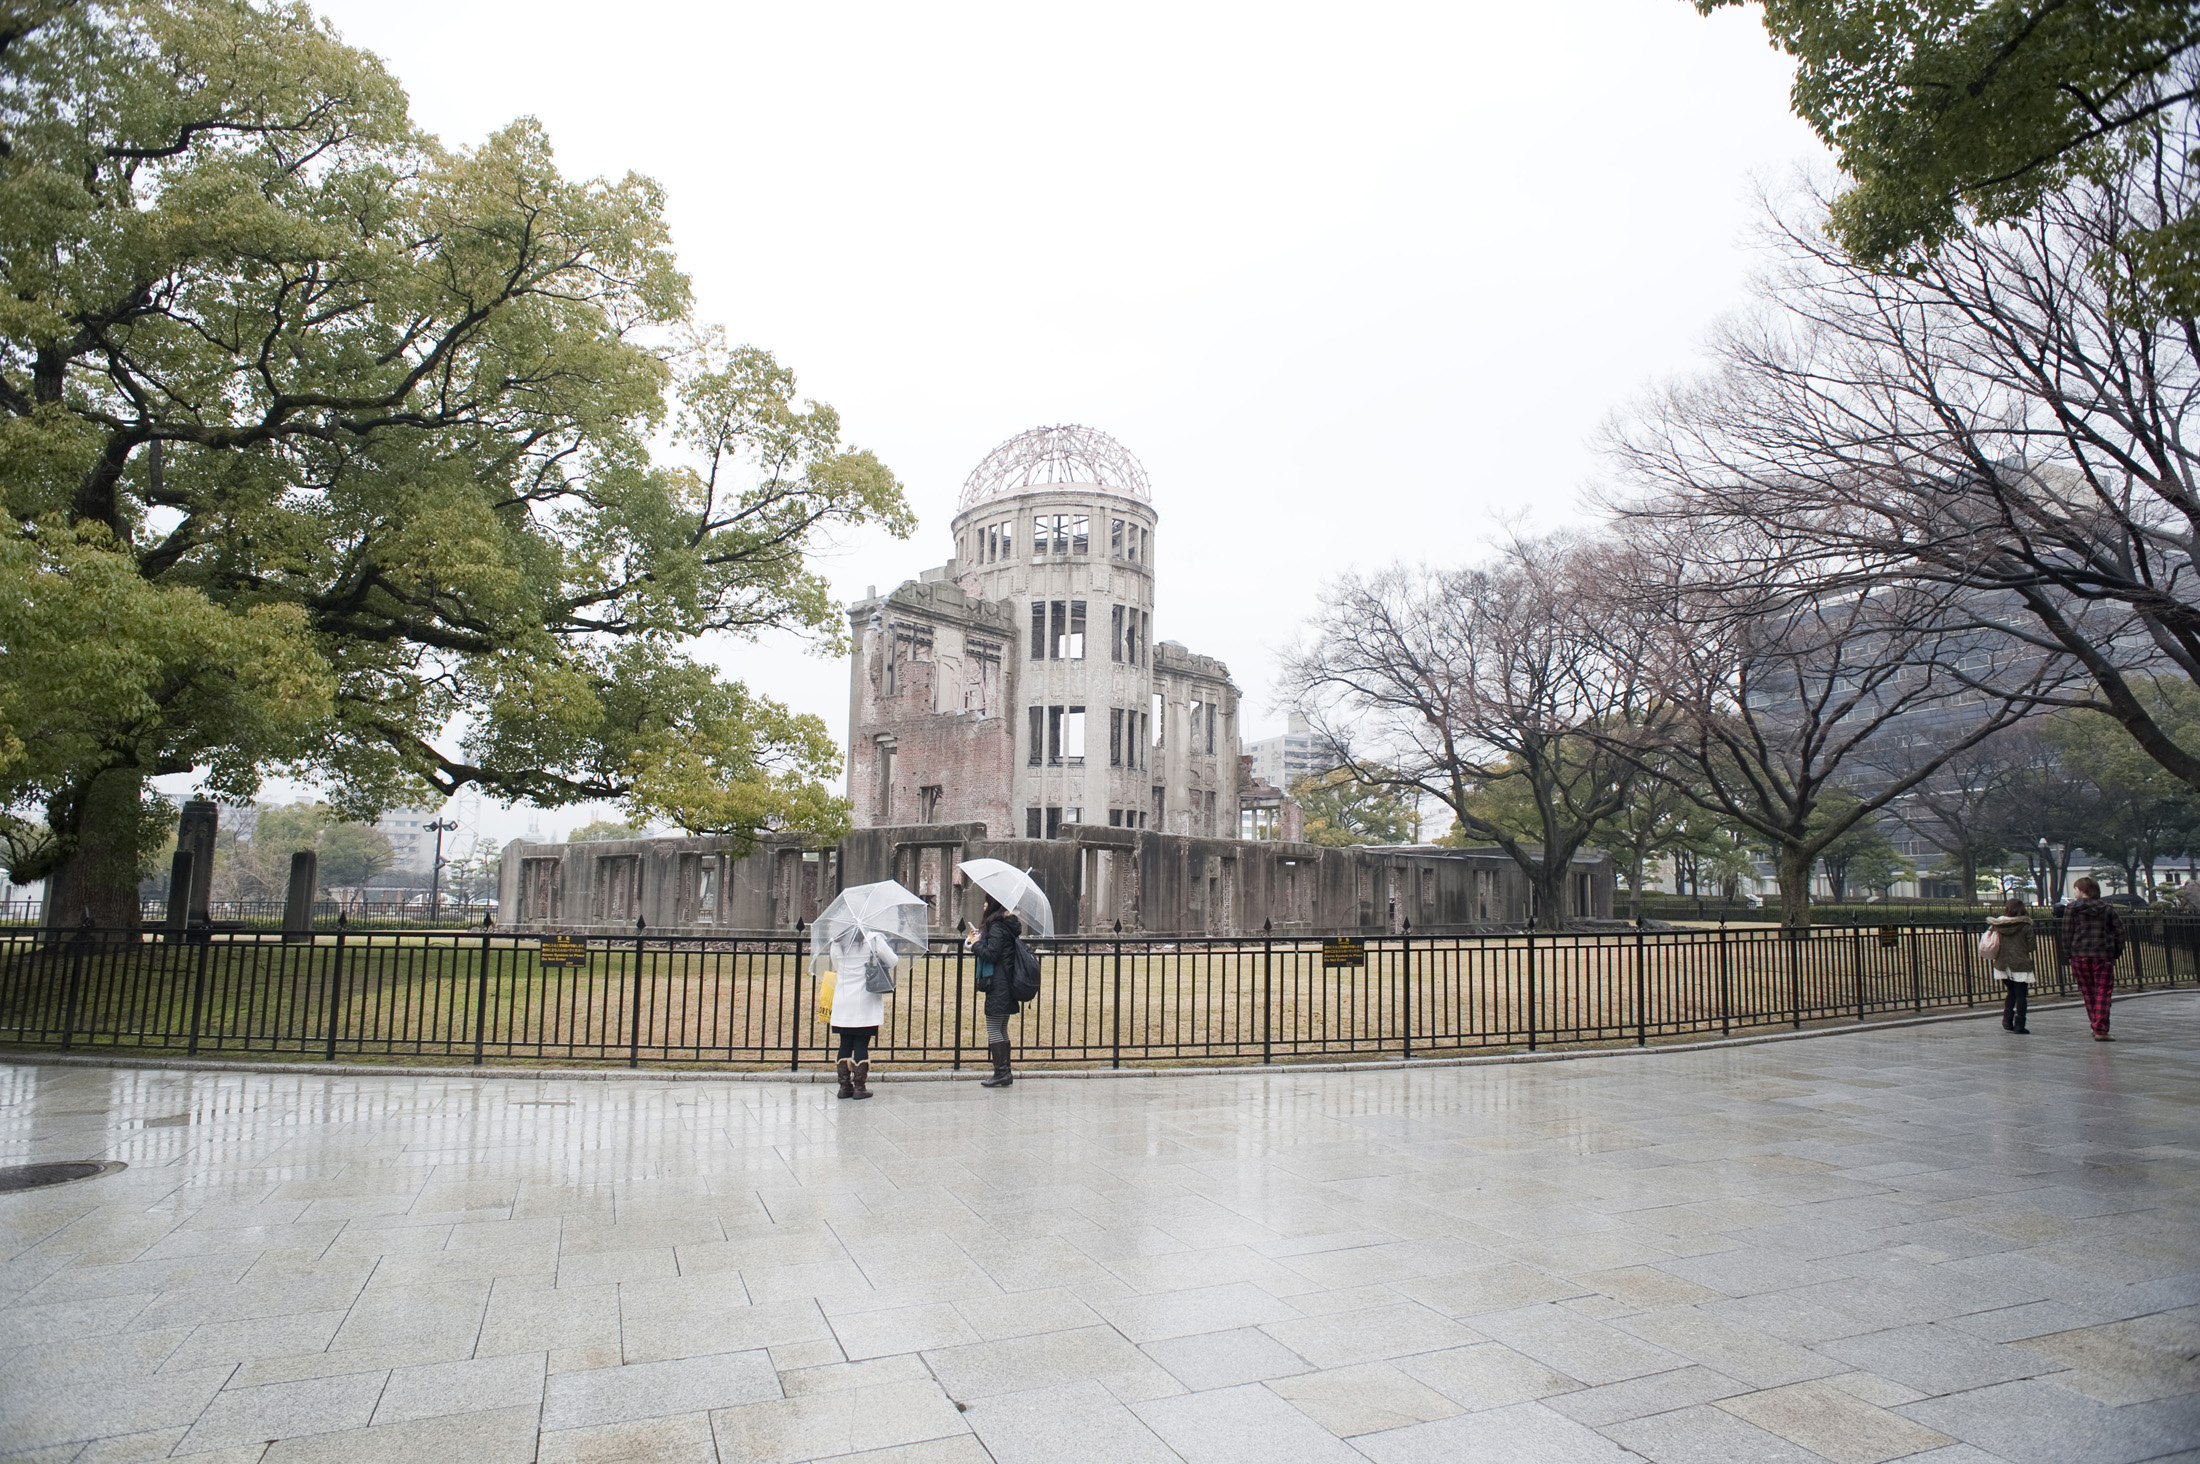 Atomic Bomb Dome or A-Bomb Dome, Genbaku Dome, Hiroshima, Japan